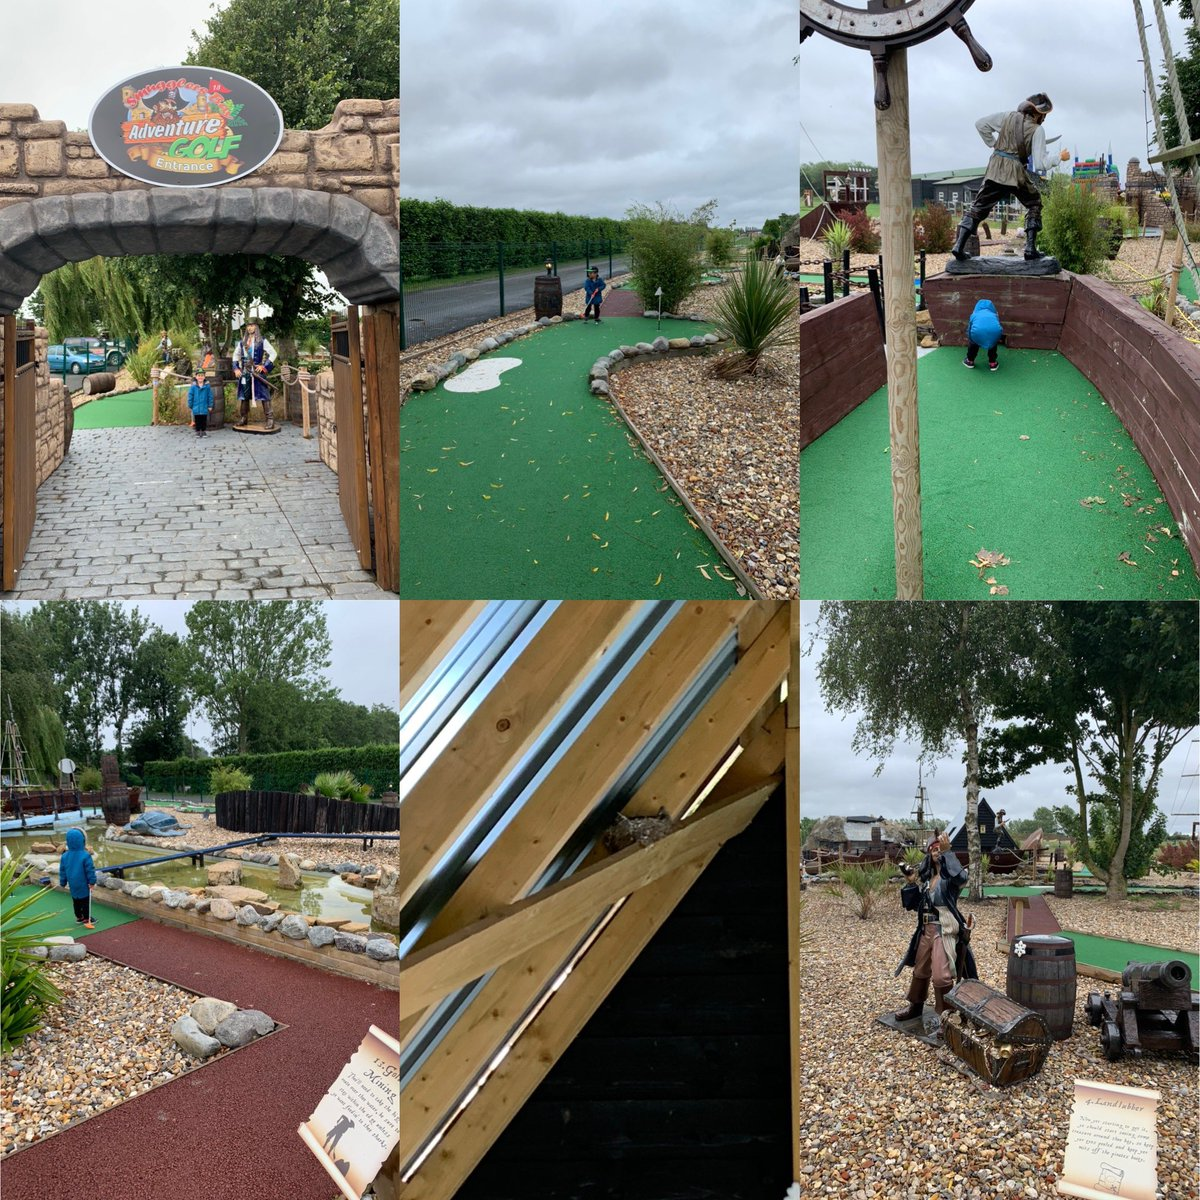 A serious game of adventure golf this morning!We lost our focus when we found a birds nest on hole 15 then Dad let his lead slip eventually losing by 3 shots! Definitely worth a visit for fun family time. #family #familytime #littleboy #junior #juniorgolf #children #funpic.twitter.com/Q5auvOFwyt – at Stonham Barns